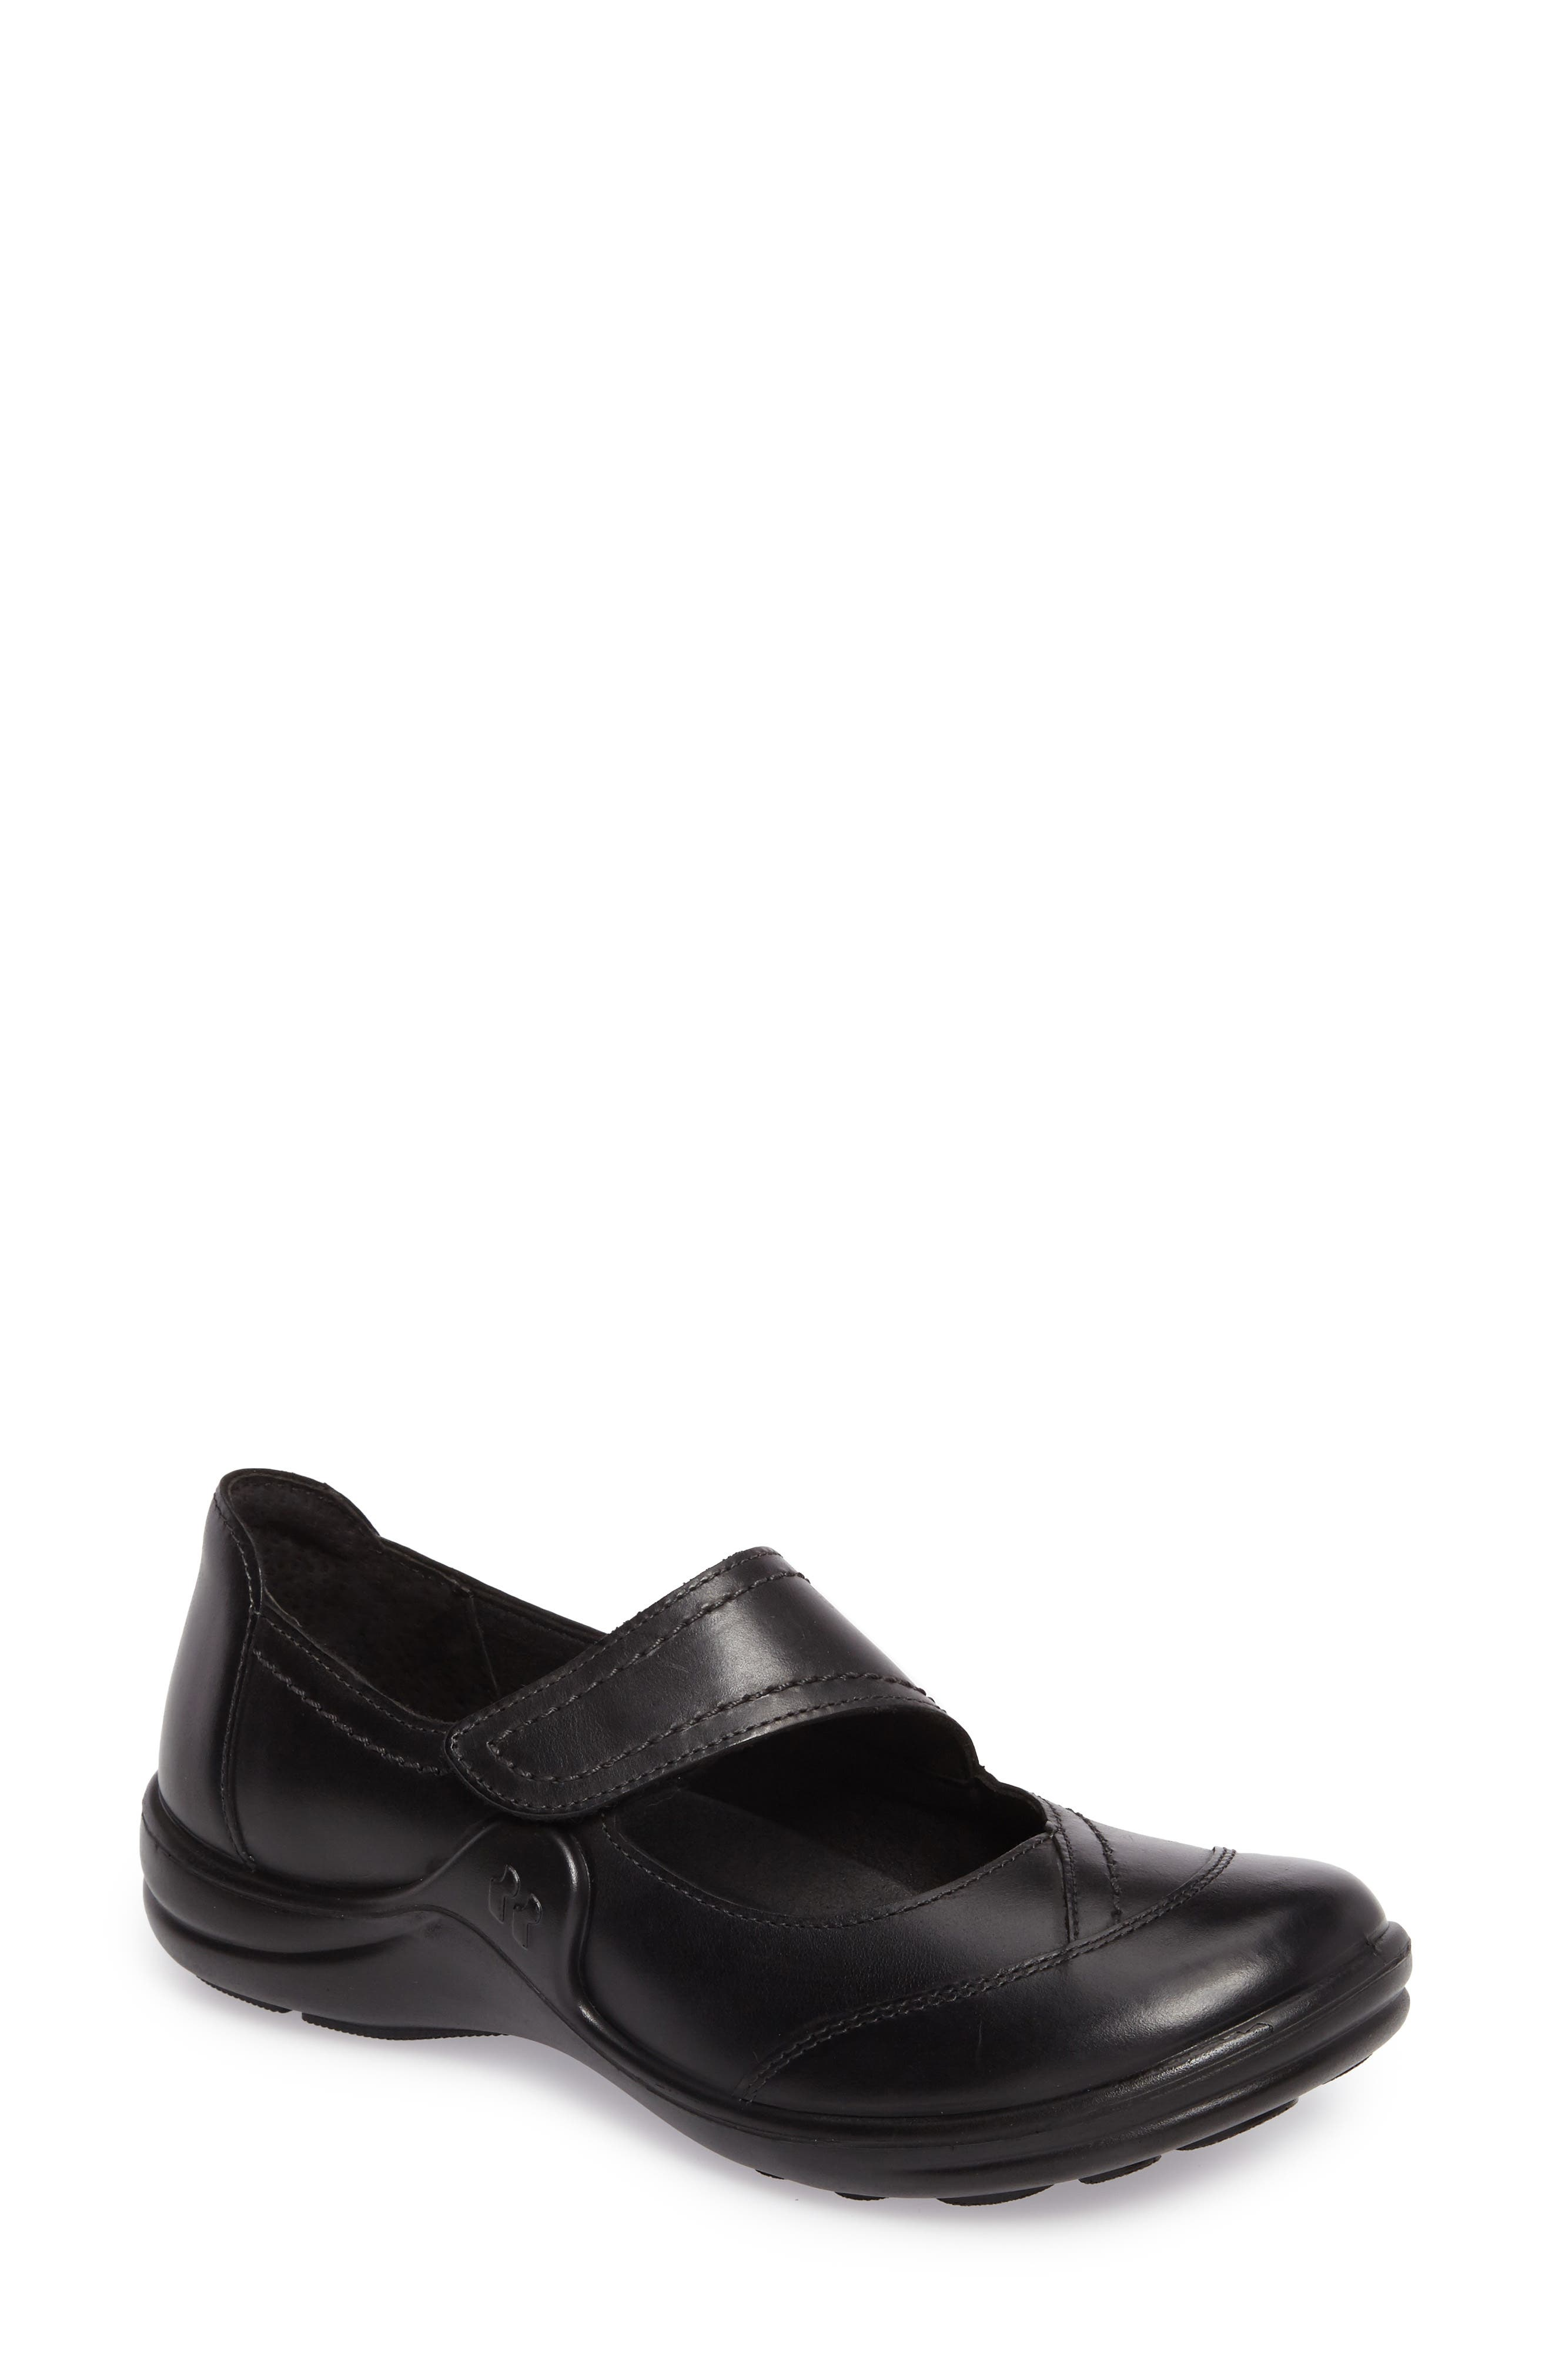 Maddy 30 Mary Jane Flat,                         Main,                         color, Black Leather